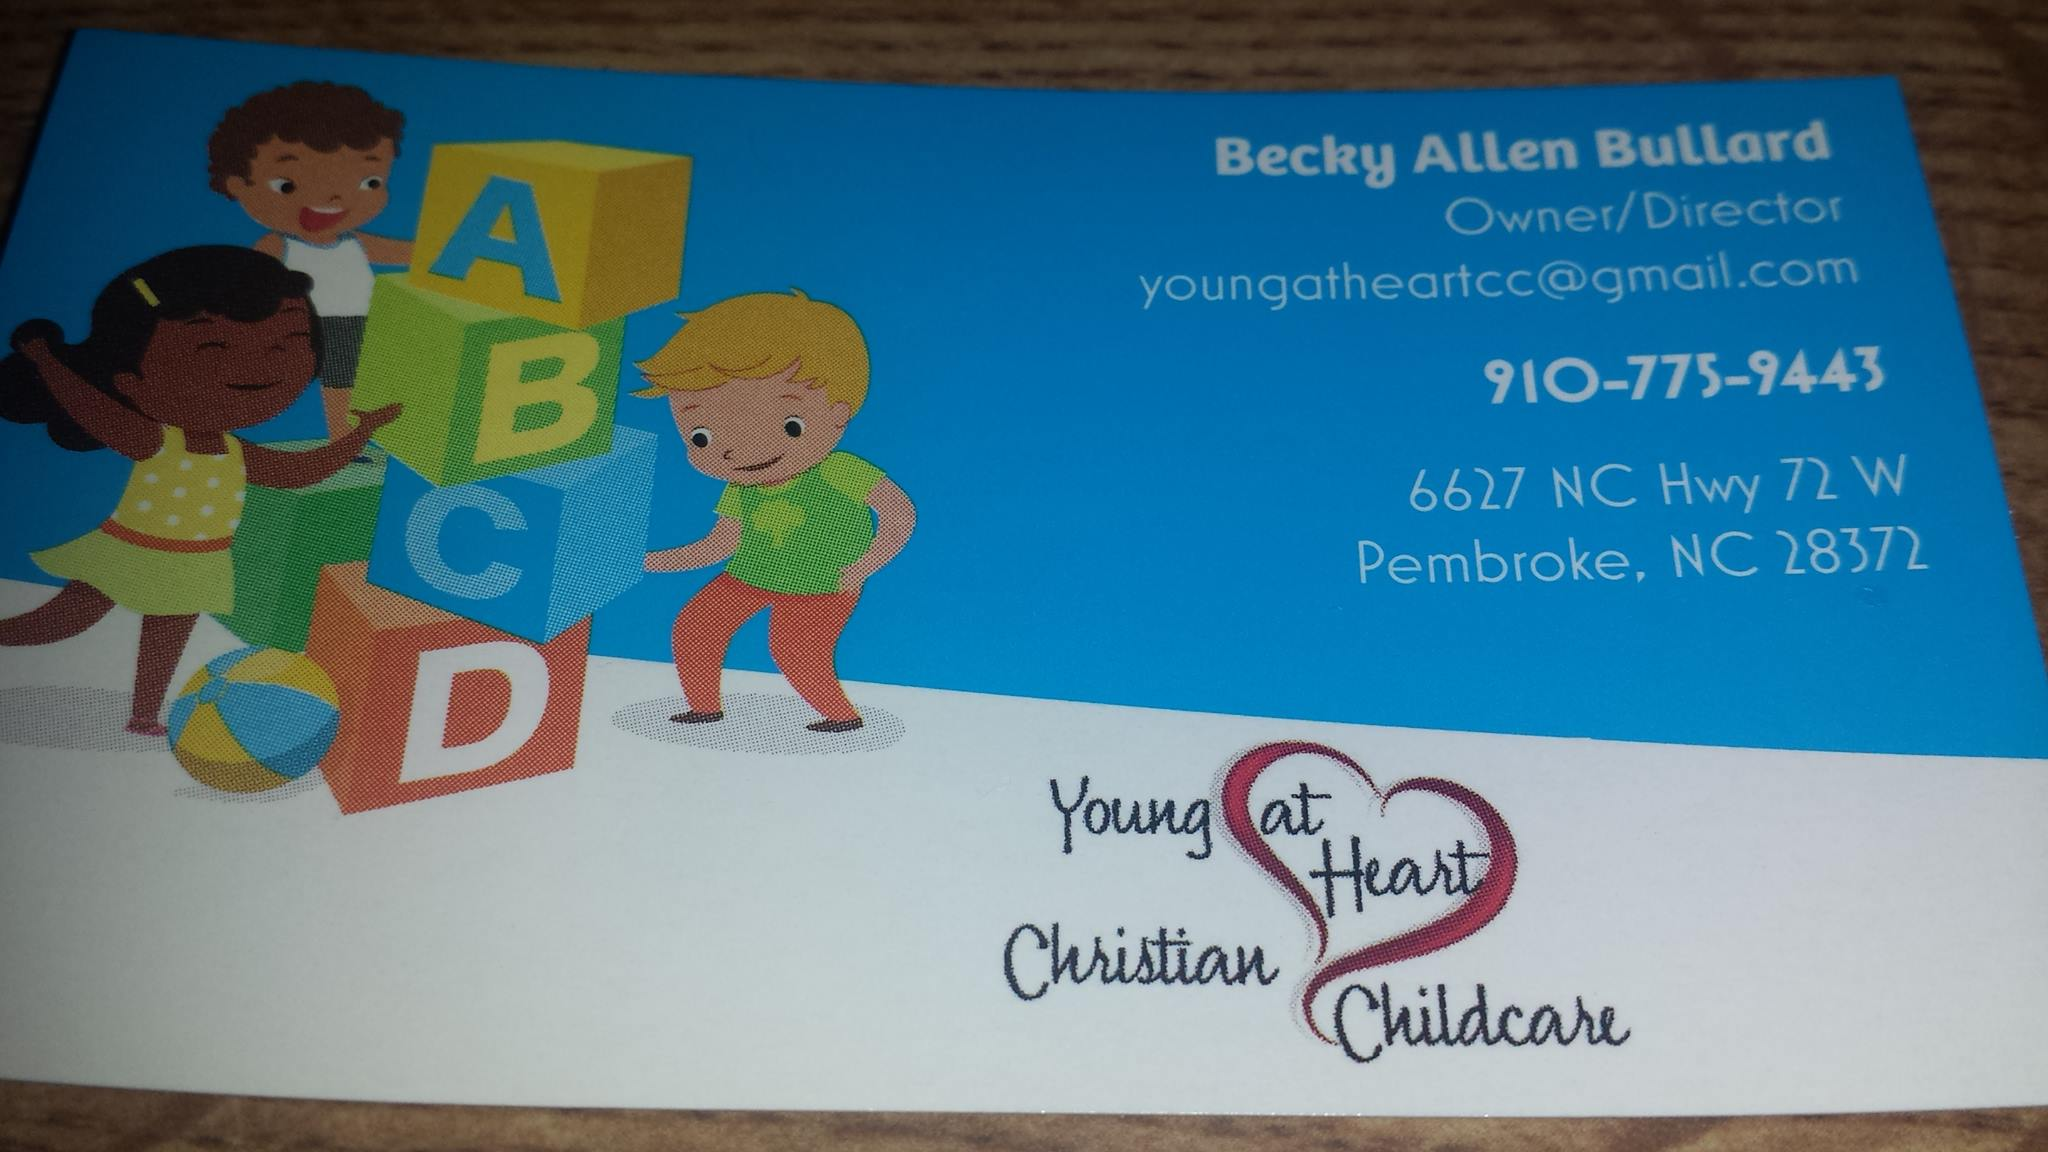 YOUNG @ HEART CHRISTIAN CHILDCARE